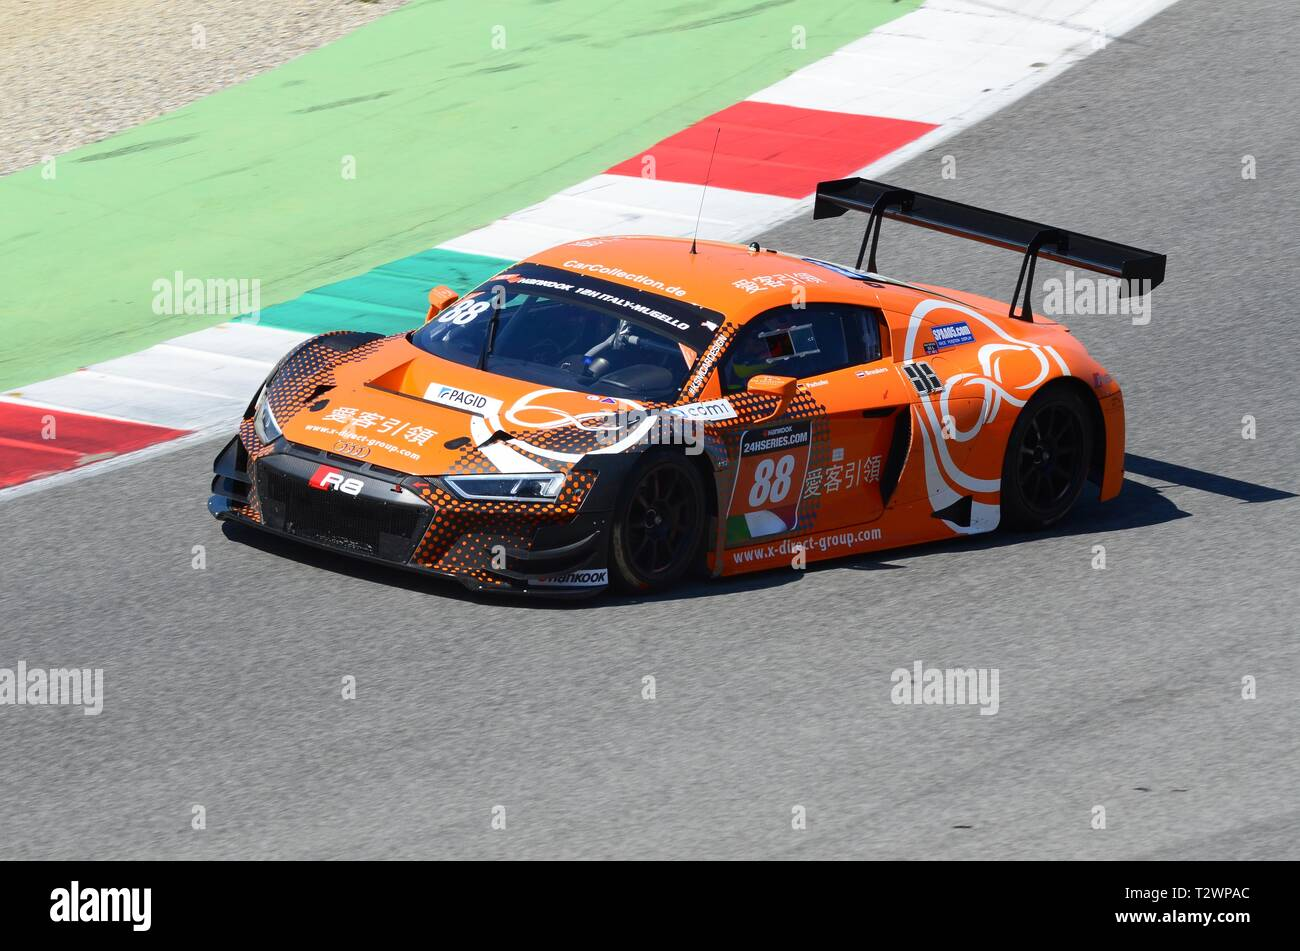 Italy - 29 March, 2019: Audi R8 LMS 2019 of Car Collection Motorsport Germany Team driven by Dimitri Parhofer/Rik Breukers/Markus Pommer/Toni Forné. Stock Photo